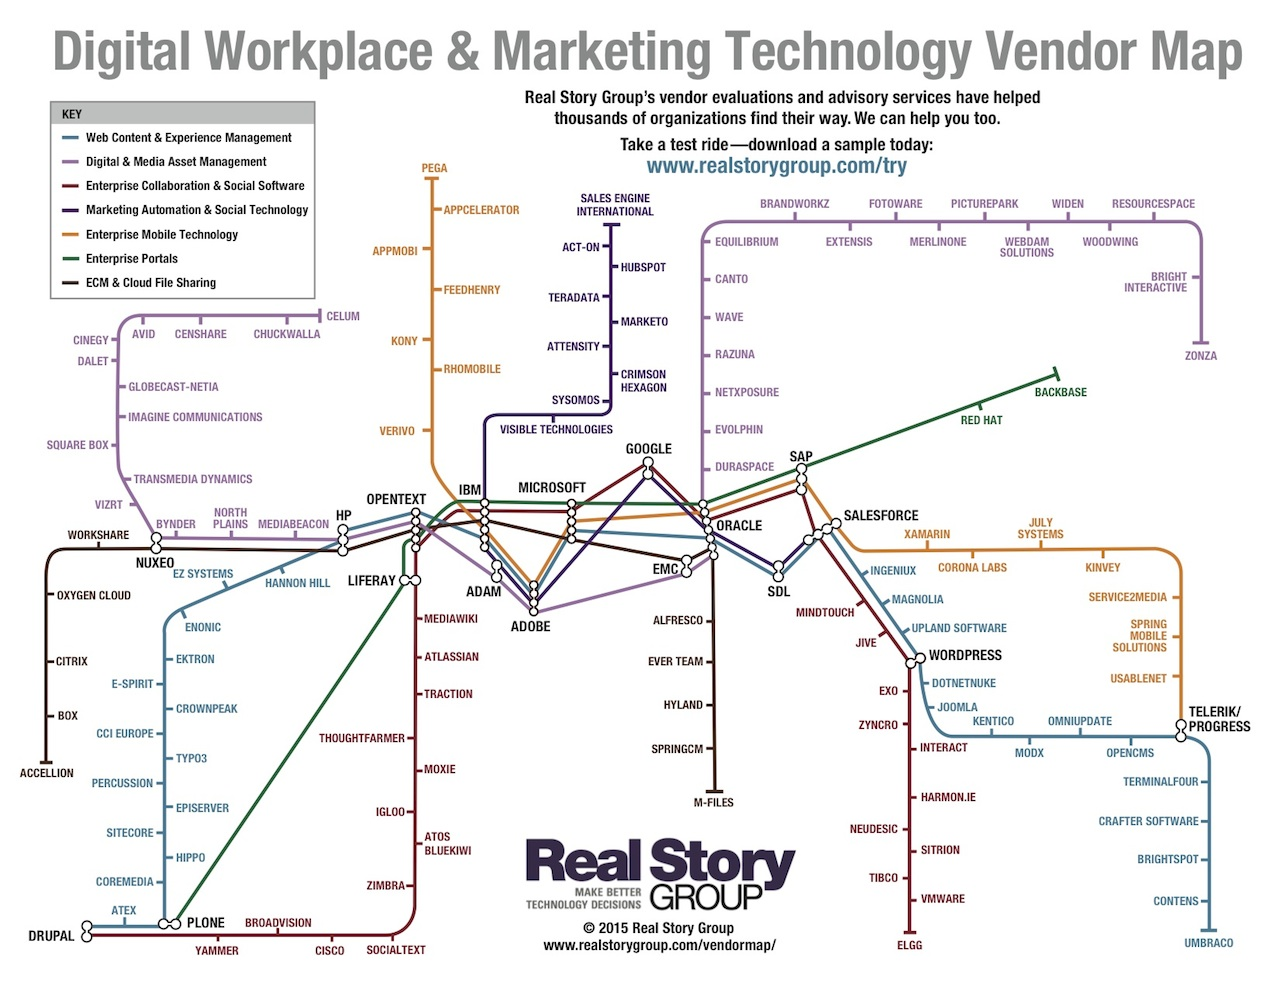 Technology Roadmap Subway Map.Updated 2012 Vendor Subway Map Blog Real Story Group